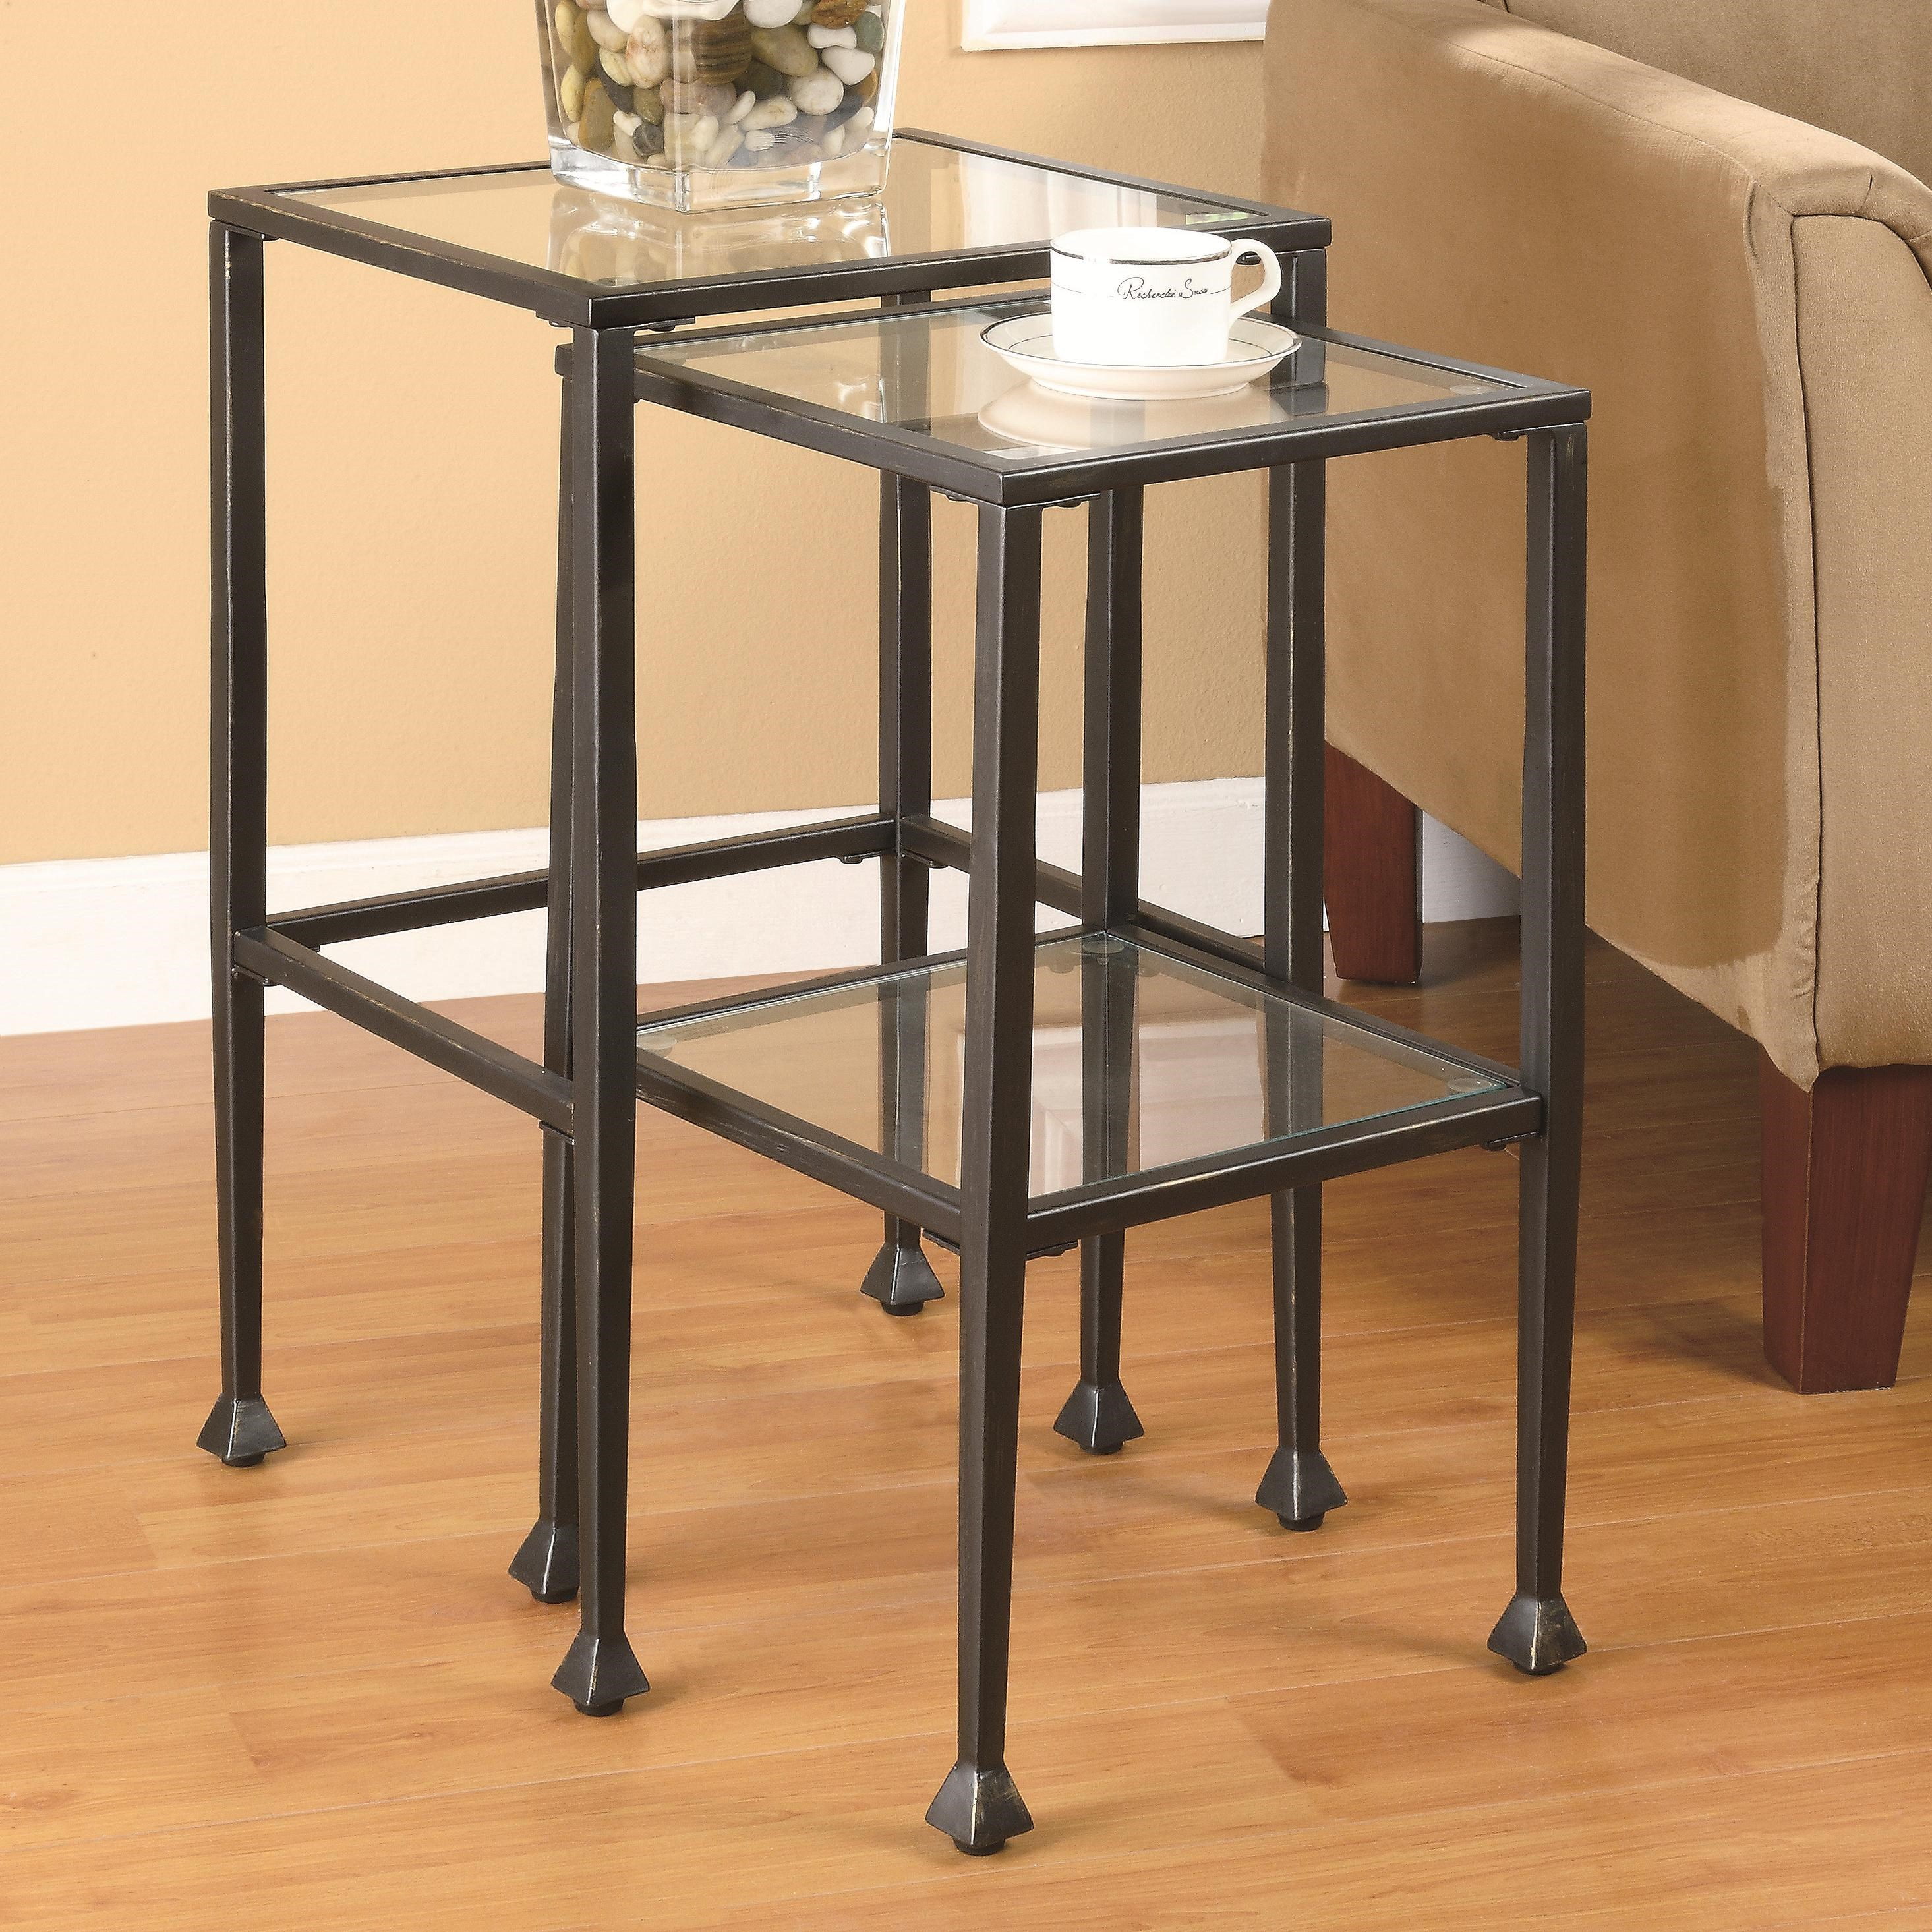 Glass Nesting Tables Nesting Tables 2 Piece Glass And Metal Nesting Tables By Coaster At Value City Furniture